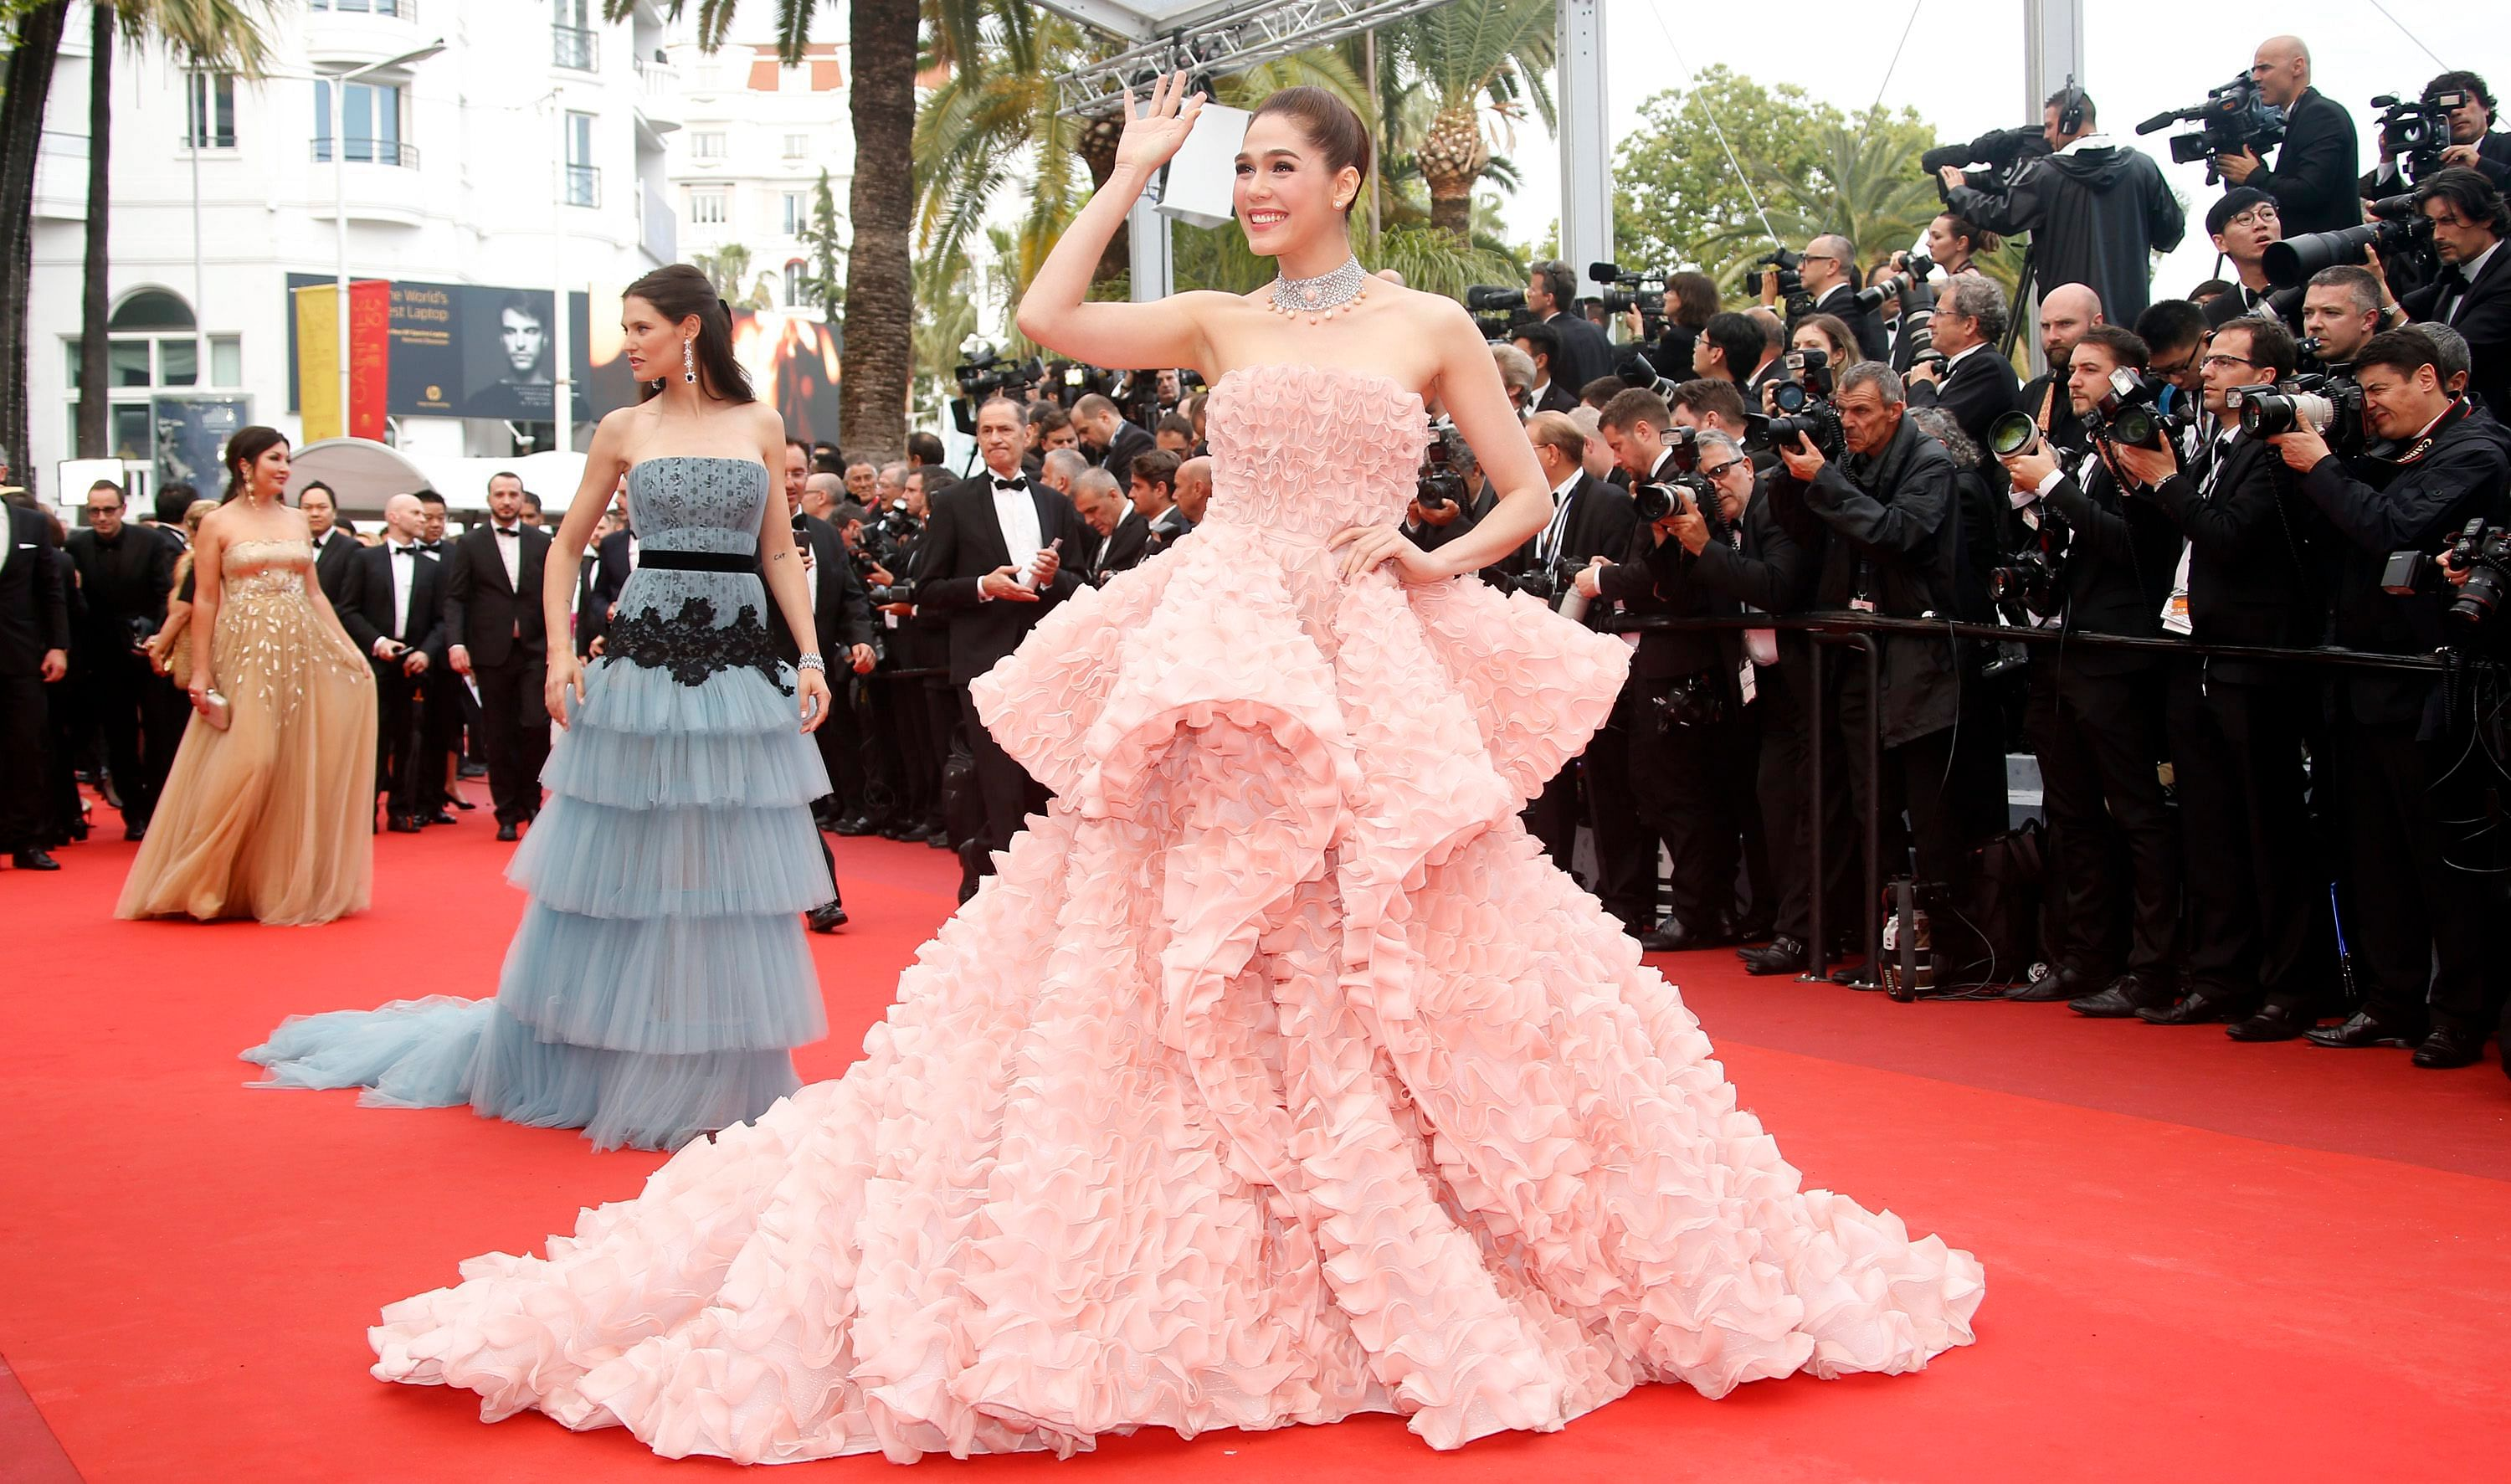 10 Standout Fashion Moments for Chinese Stars at Cannes